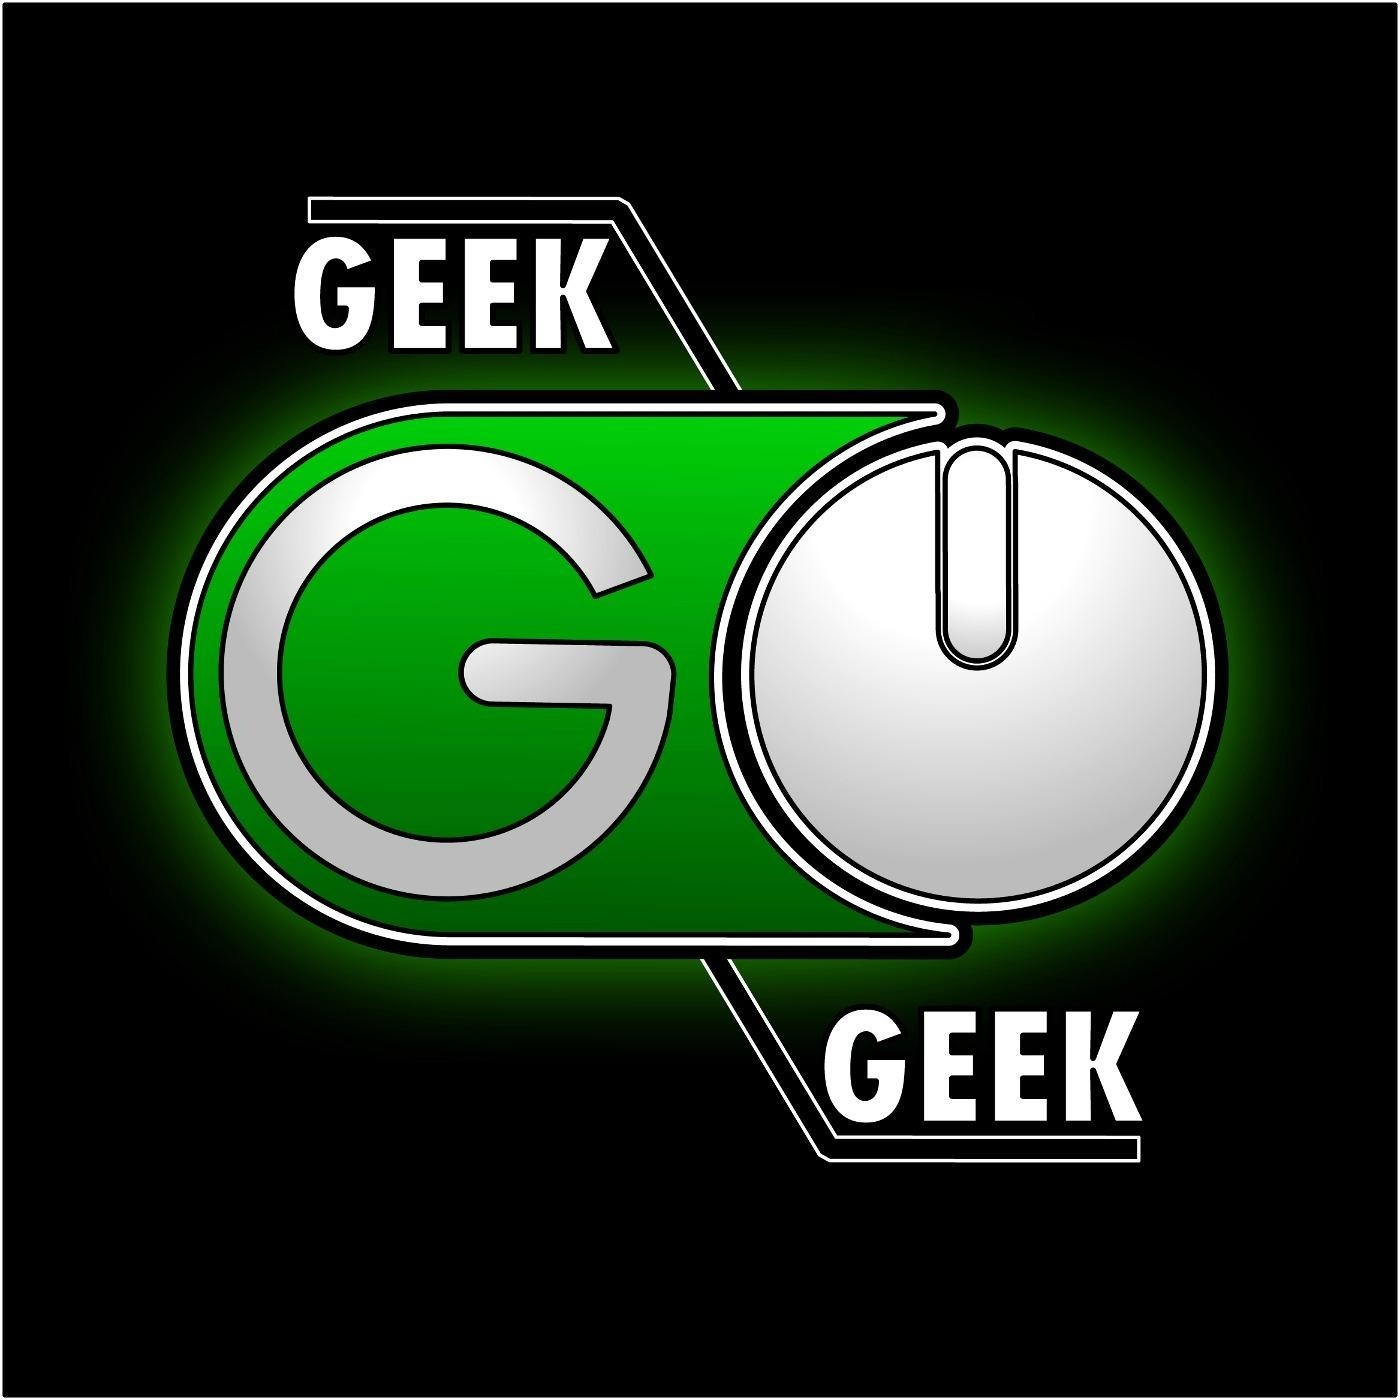 The Geek I/O Show: Episode 24 - Smaller in size and last longer in the wrapper